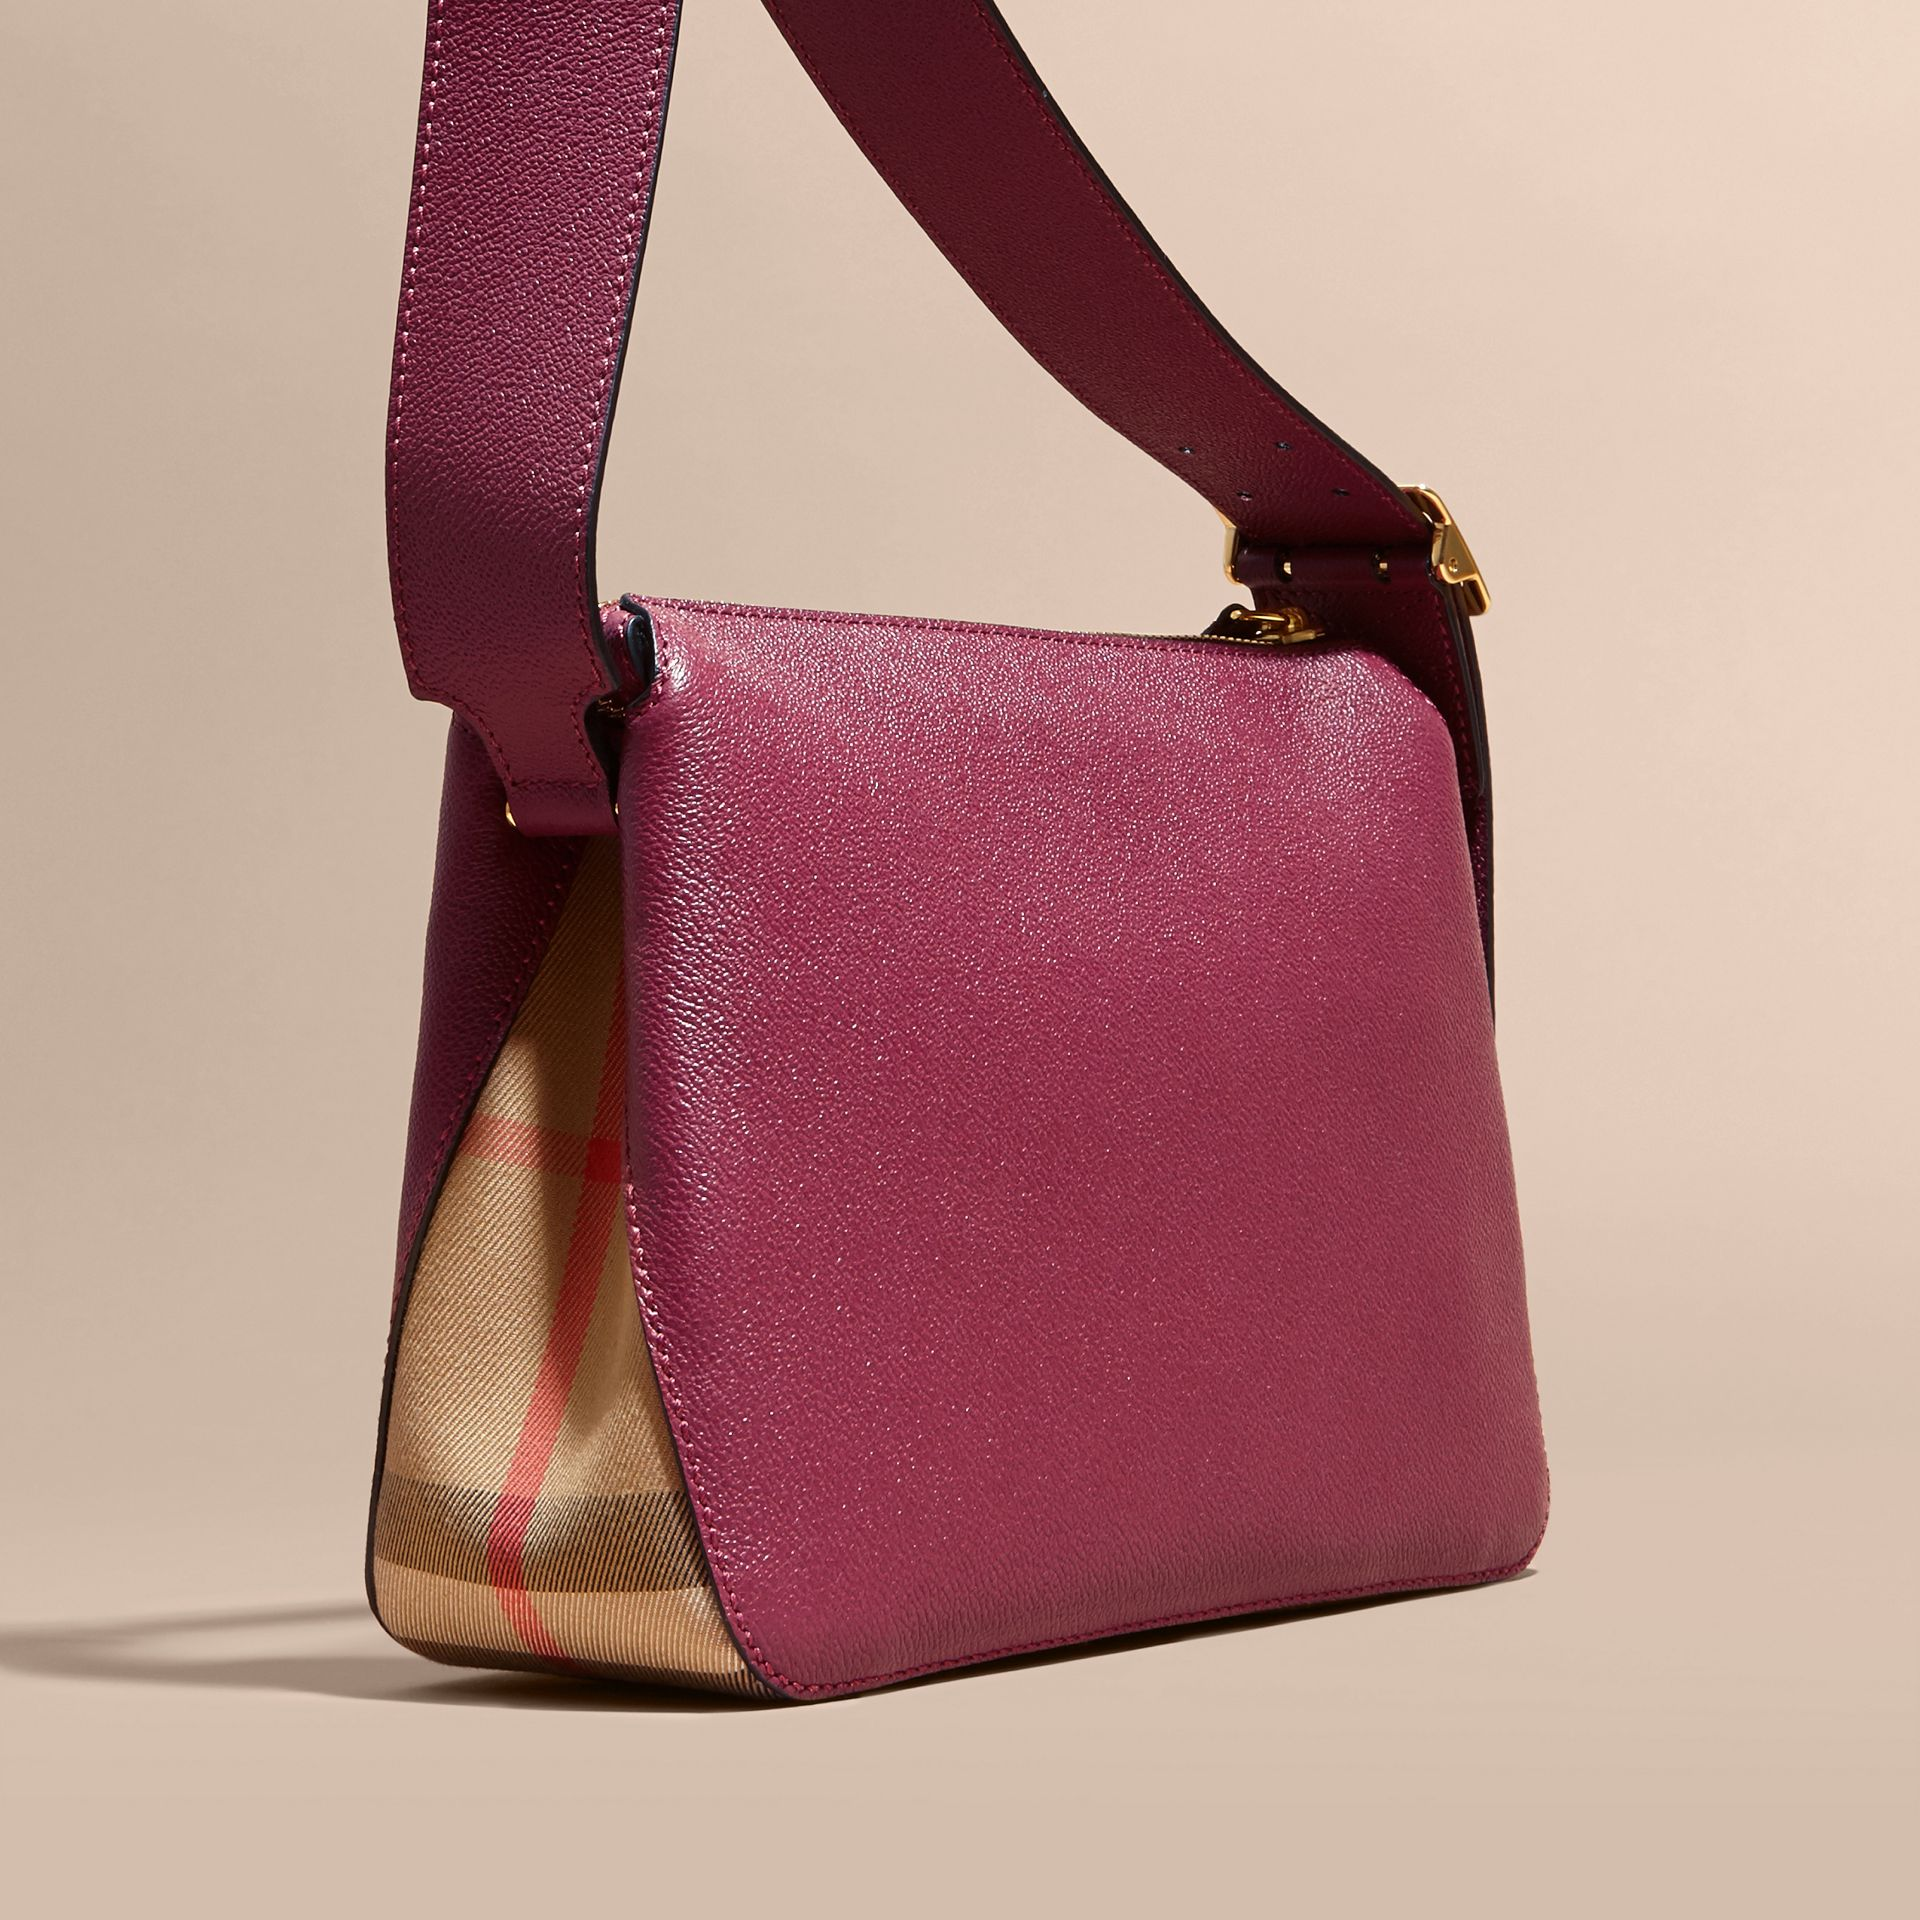 Dark plum Buckle Detail Leather and House Check Crossbody Bag Dark Plum - gallery image 4